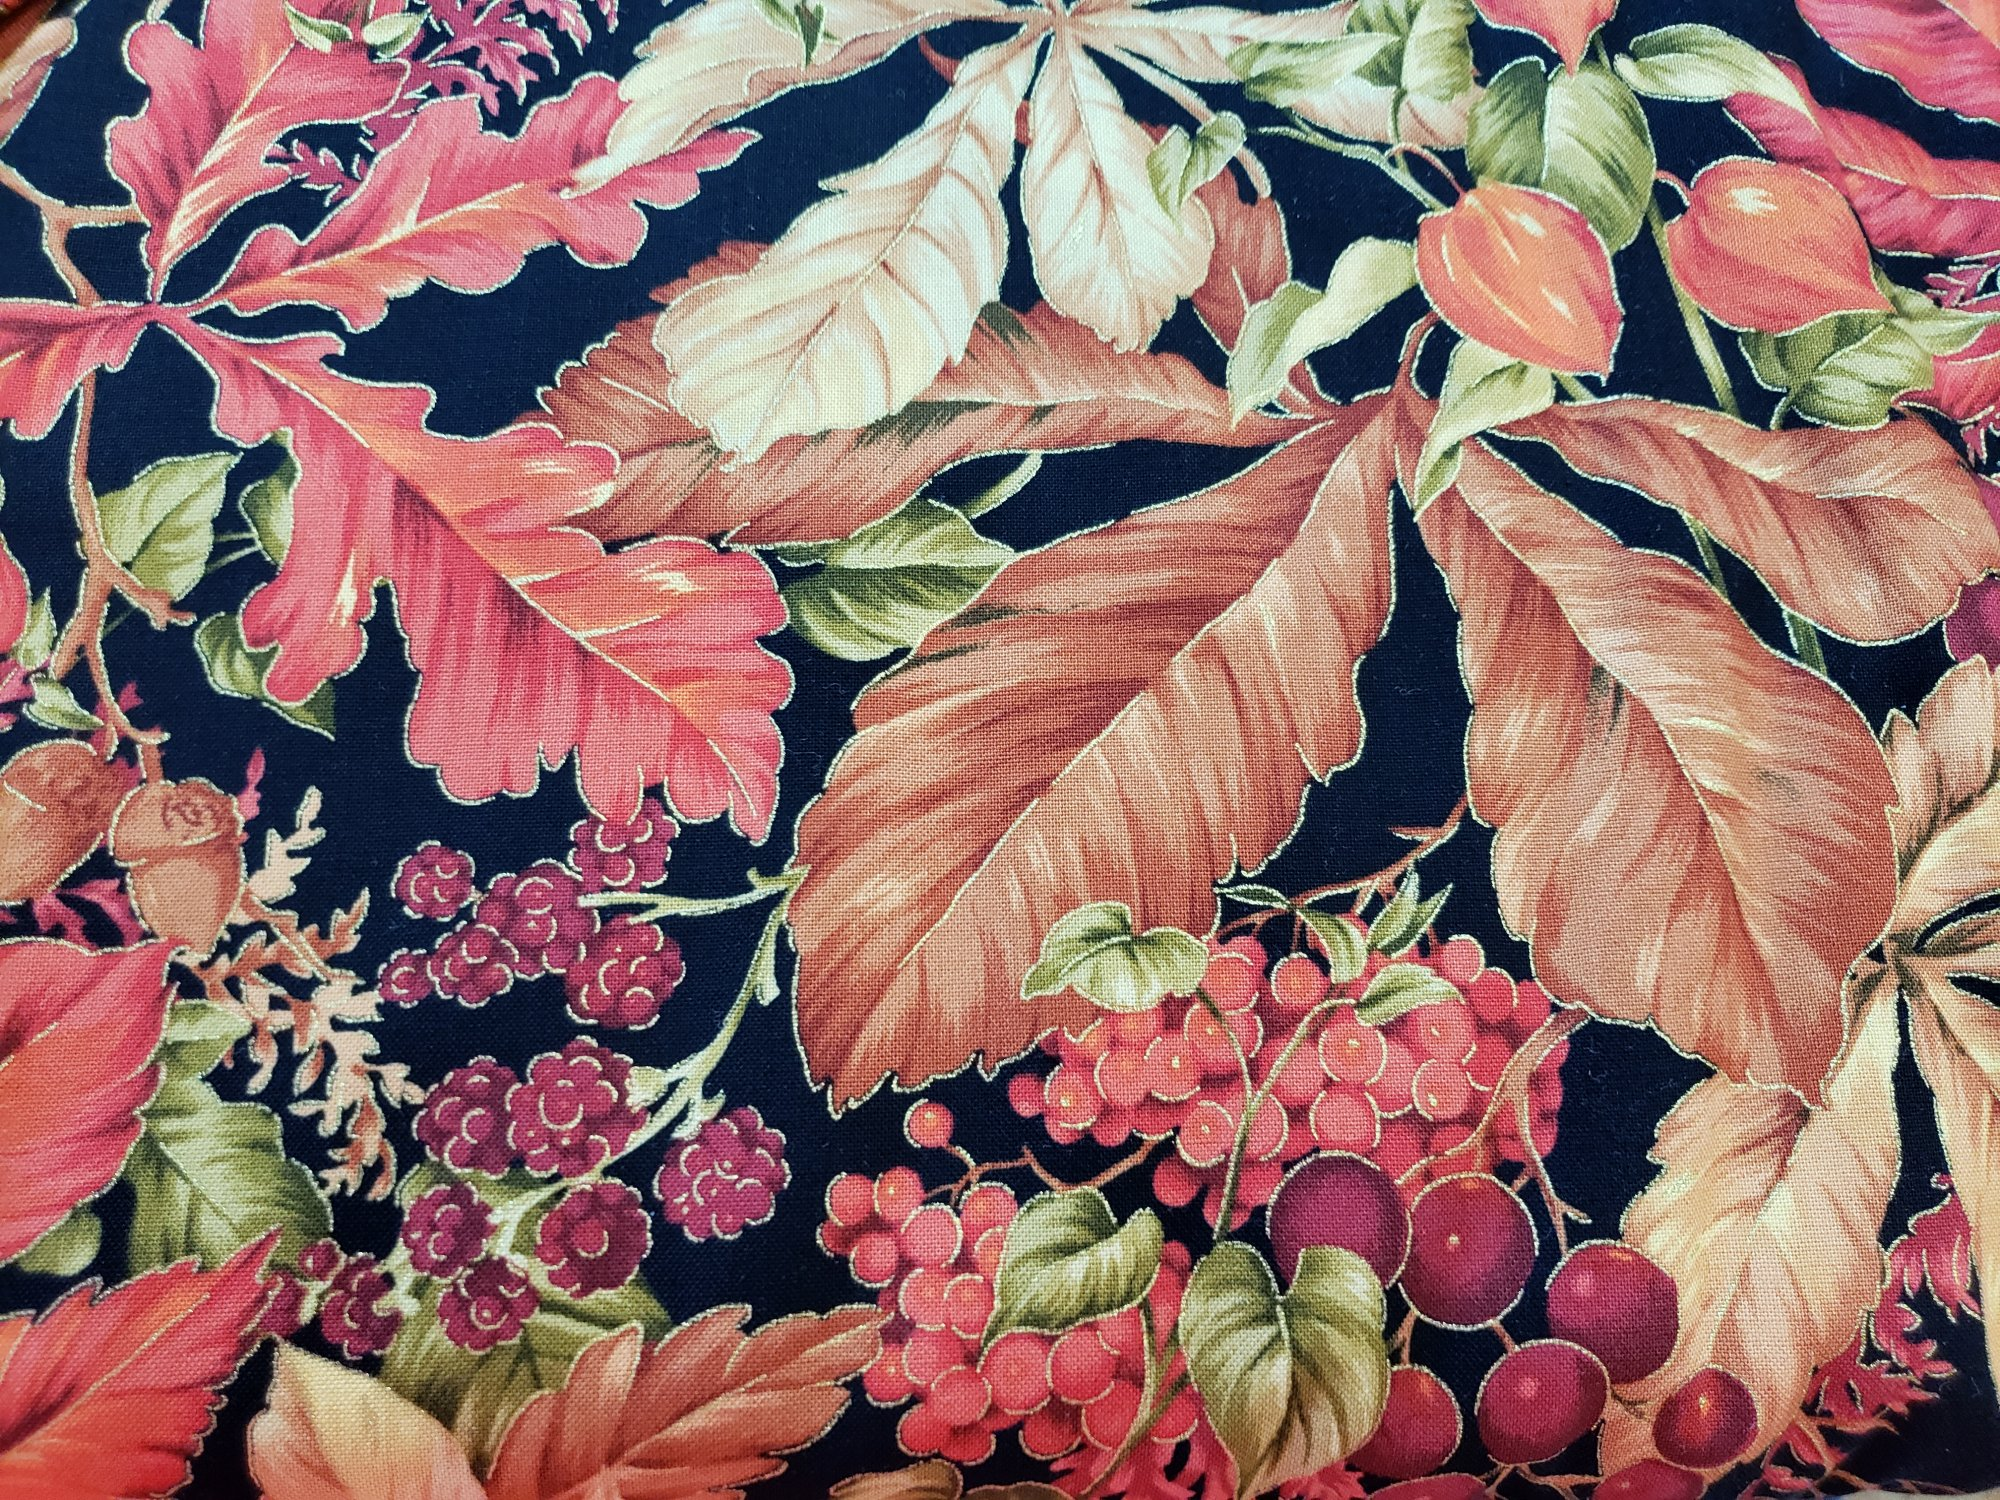 Fabric Quilt Fall spectacular Harvest Leaves